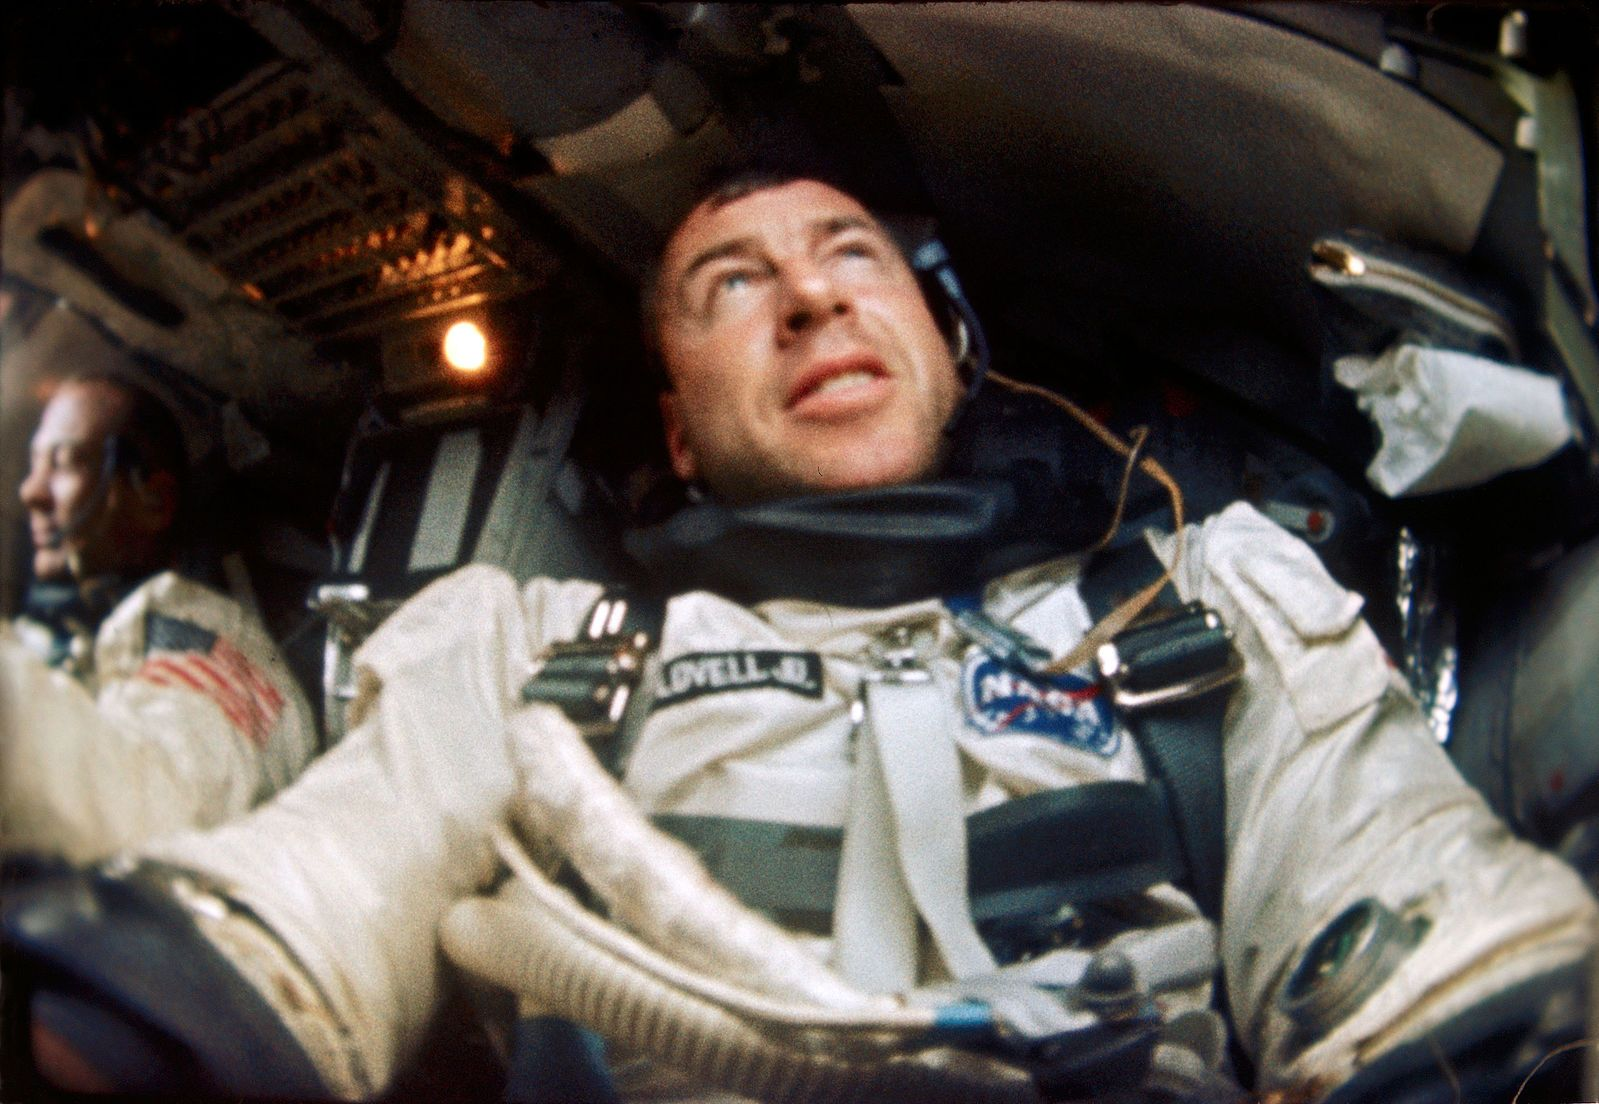 File:Astronaut James Lovell is photographed inside his Gemini spacecraft during the Gemini-12 mission.jpg